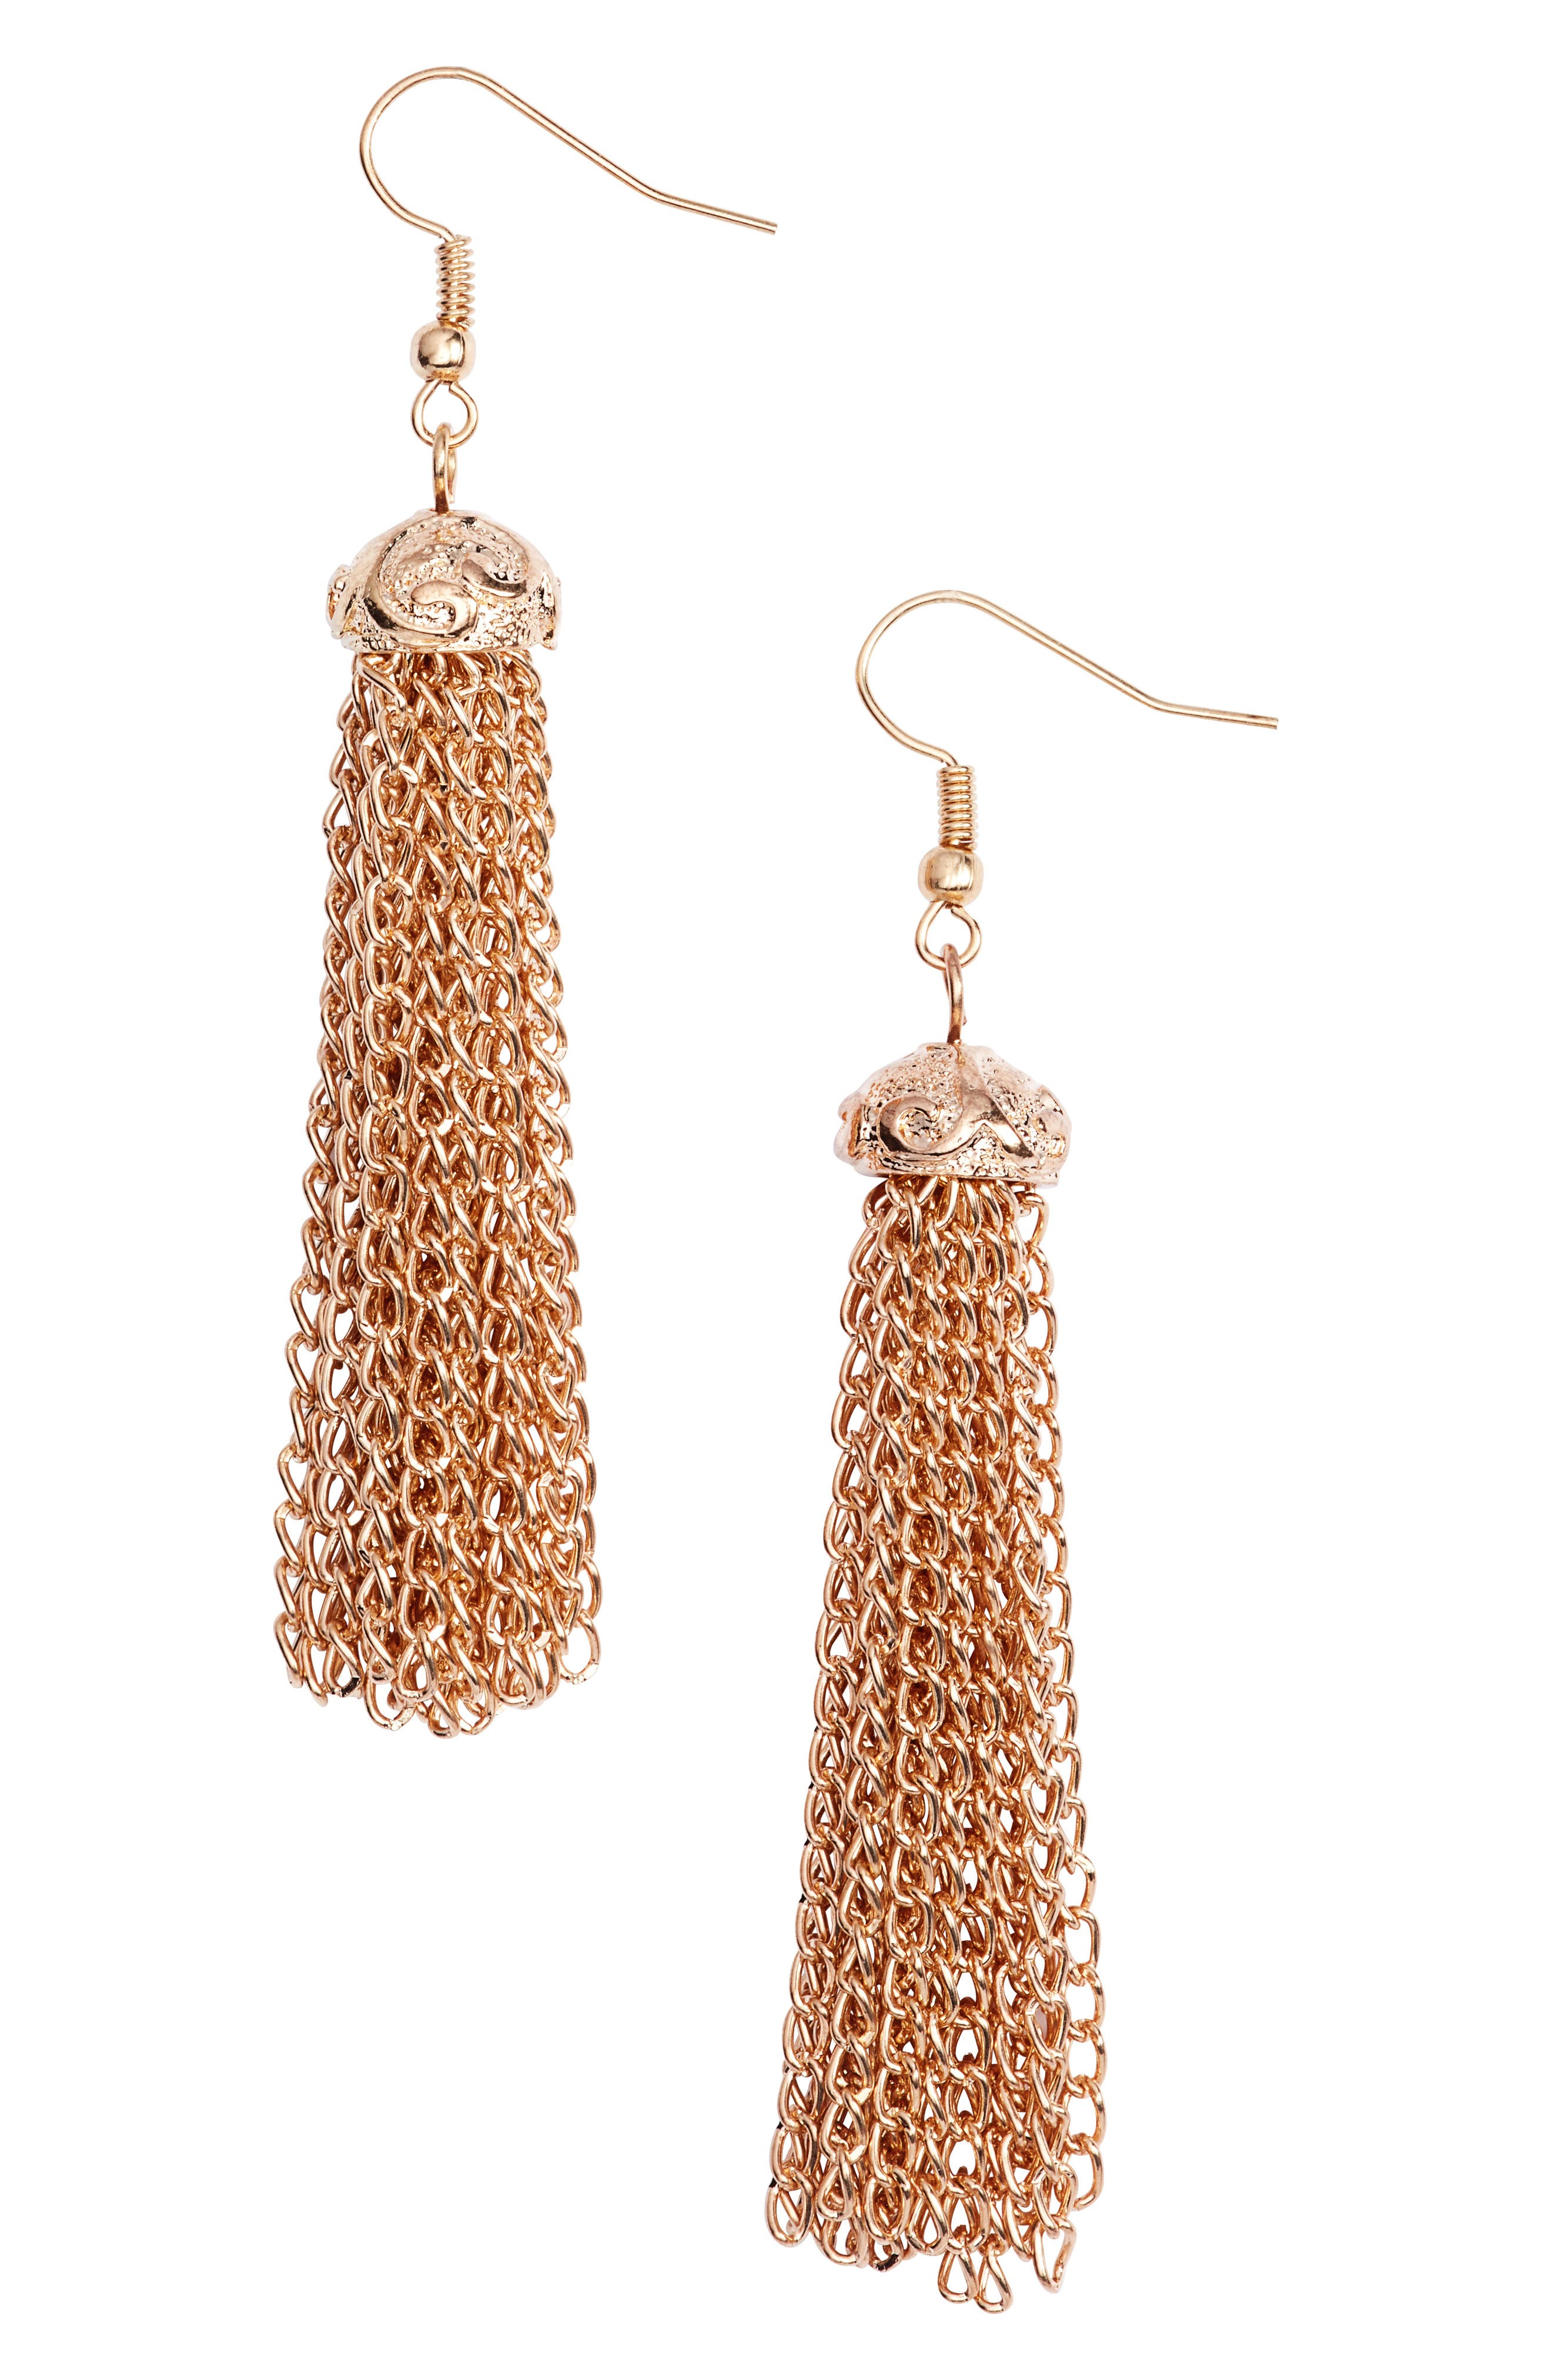 Fortuna Chain Tassel Earrings,                         Main,                         color, Oval/ Gold